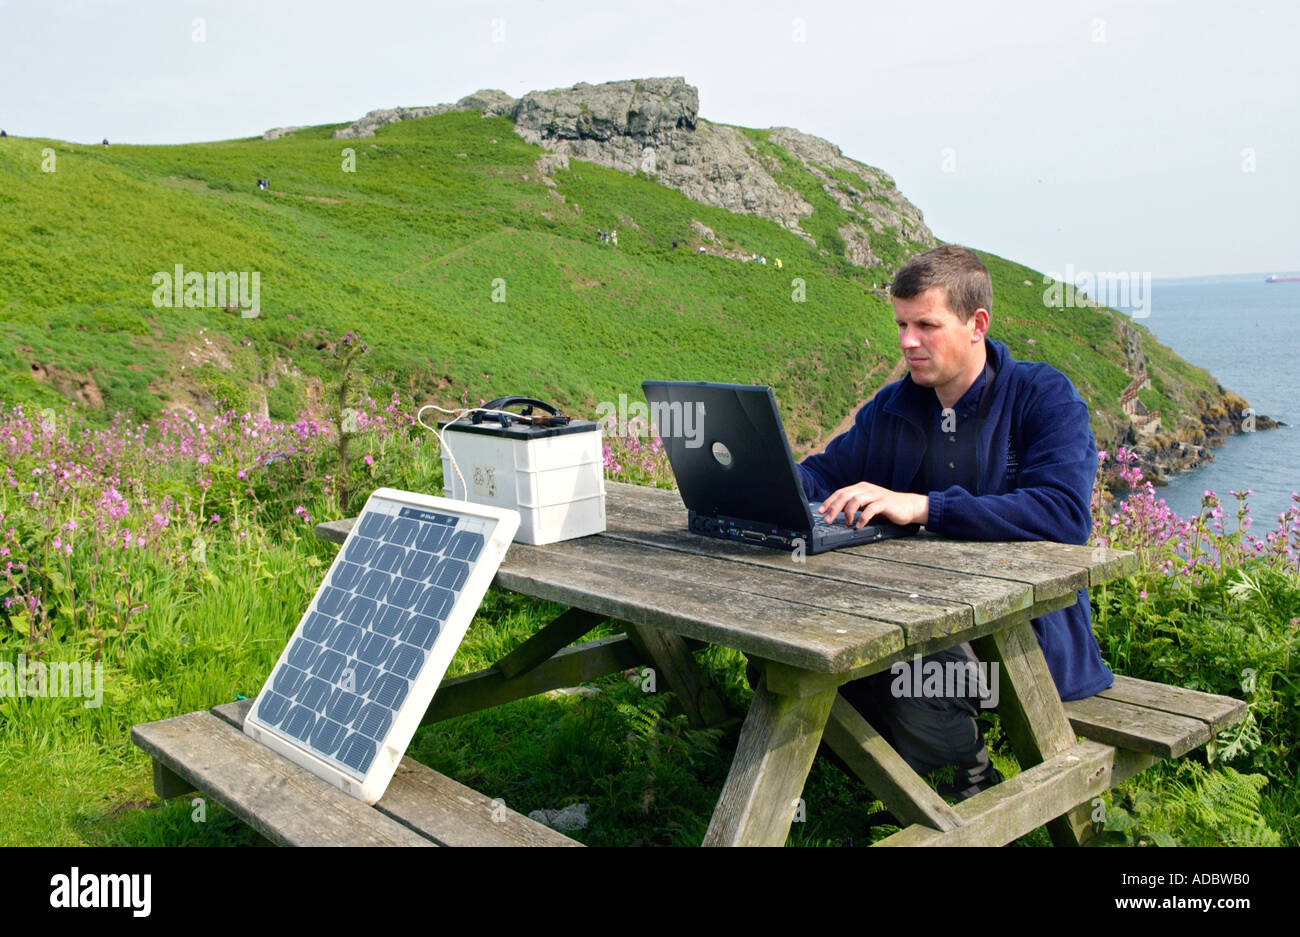 Resident warden at Skomer Island Pembrokeshire Wales UK using his laptop while charging battery with a solar panel - Stock Image